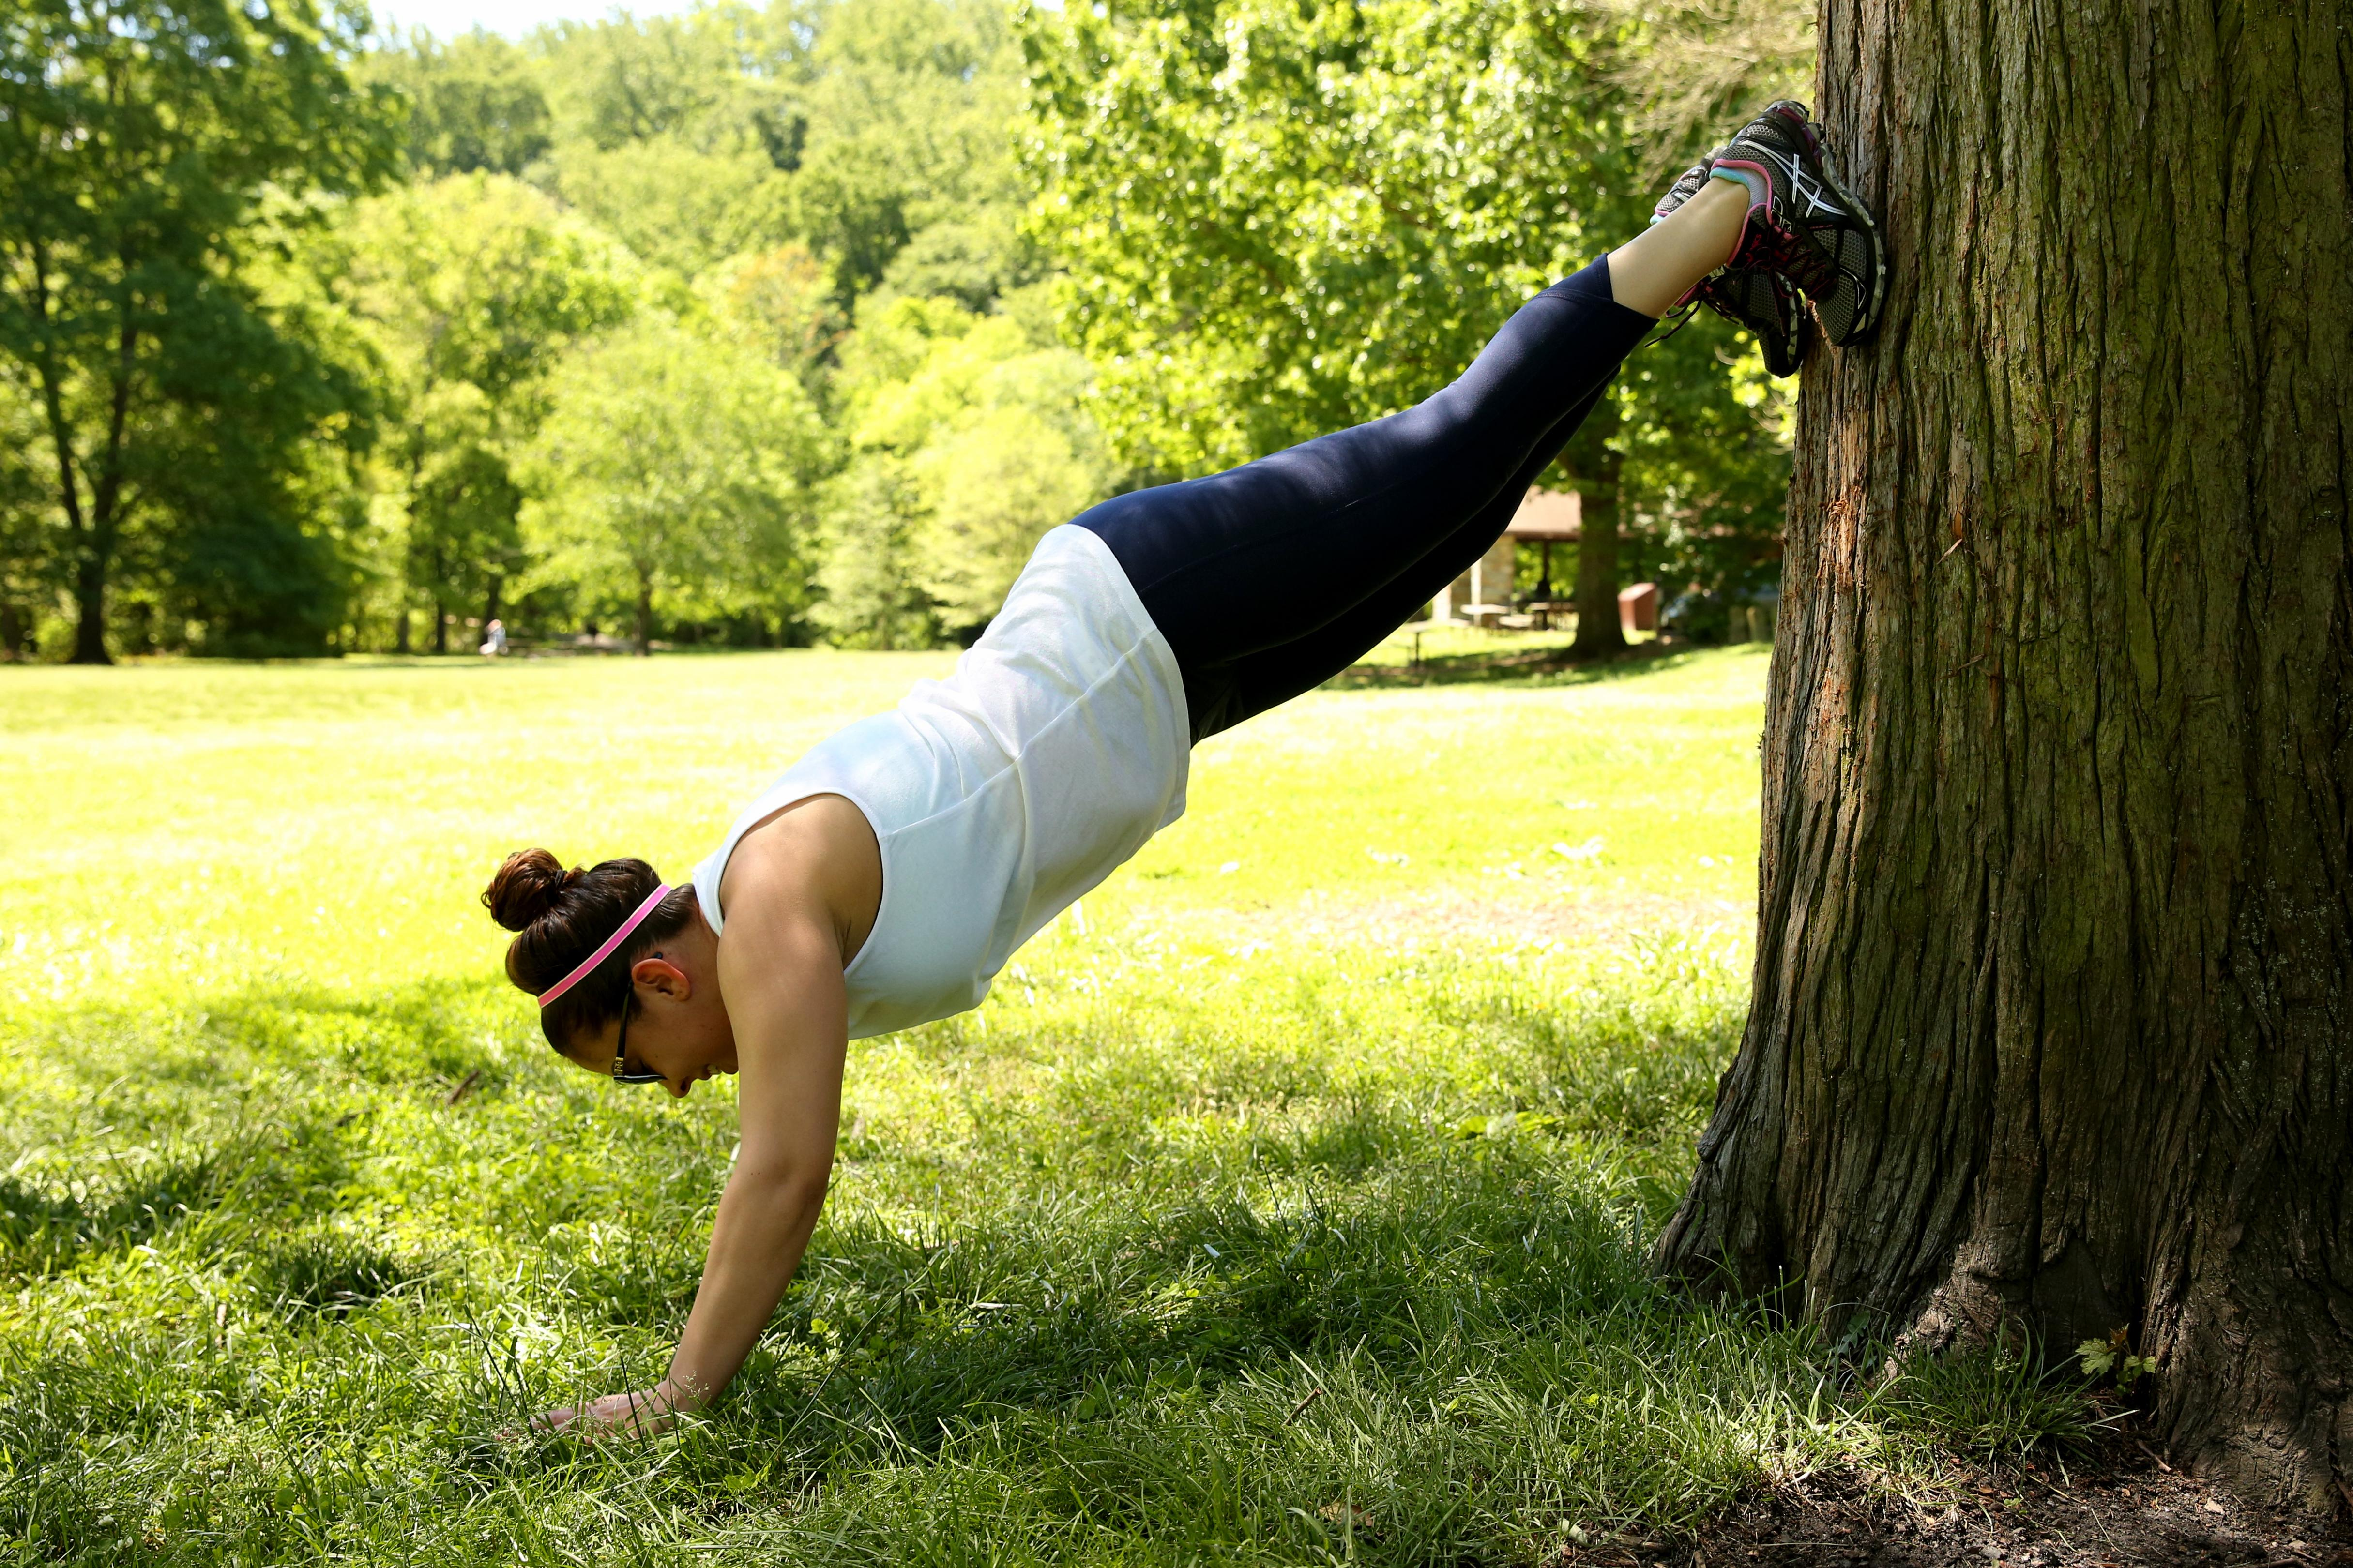 EXERCISE: Elevated plank / SETS: Hold for one minute, take one minute break. Repeat 3 times / (Amanda Andrade-Rhoades/DC Refined)